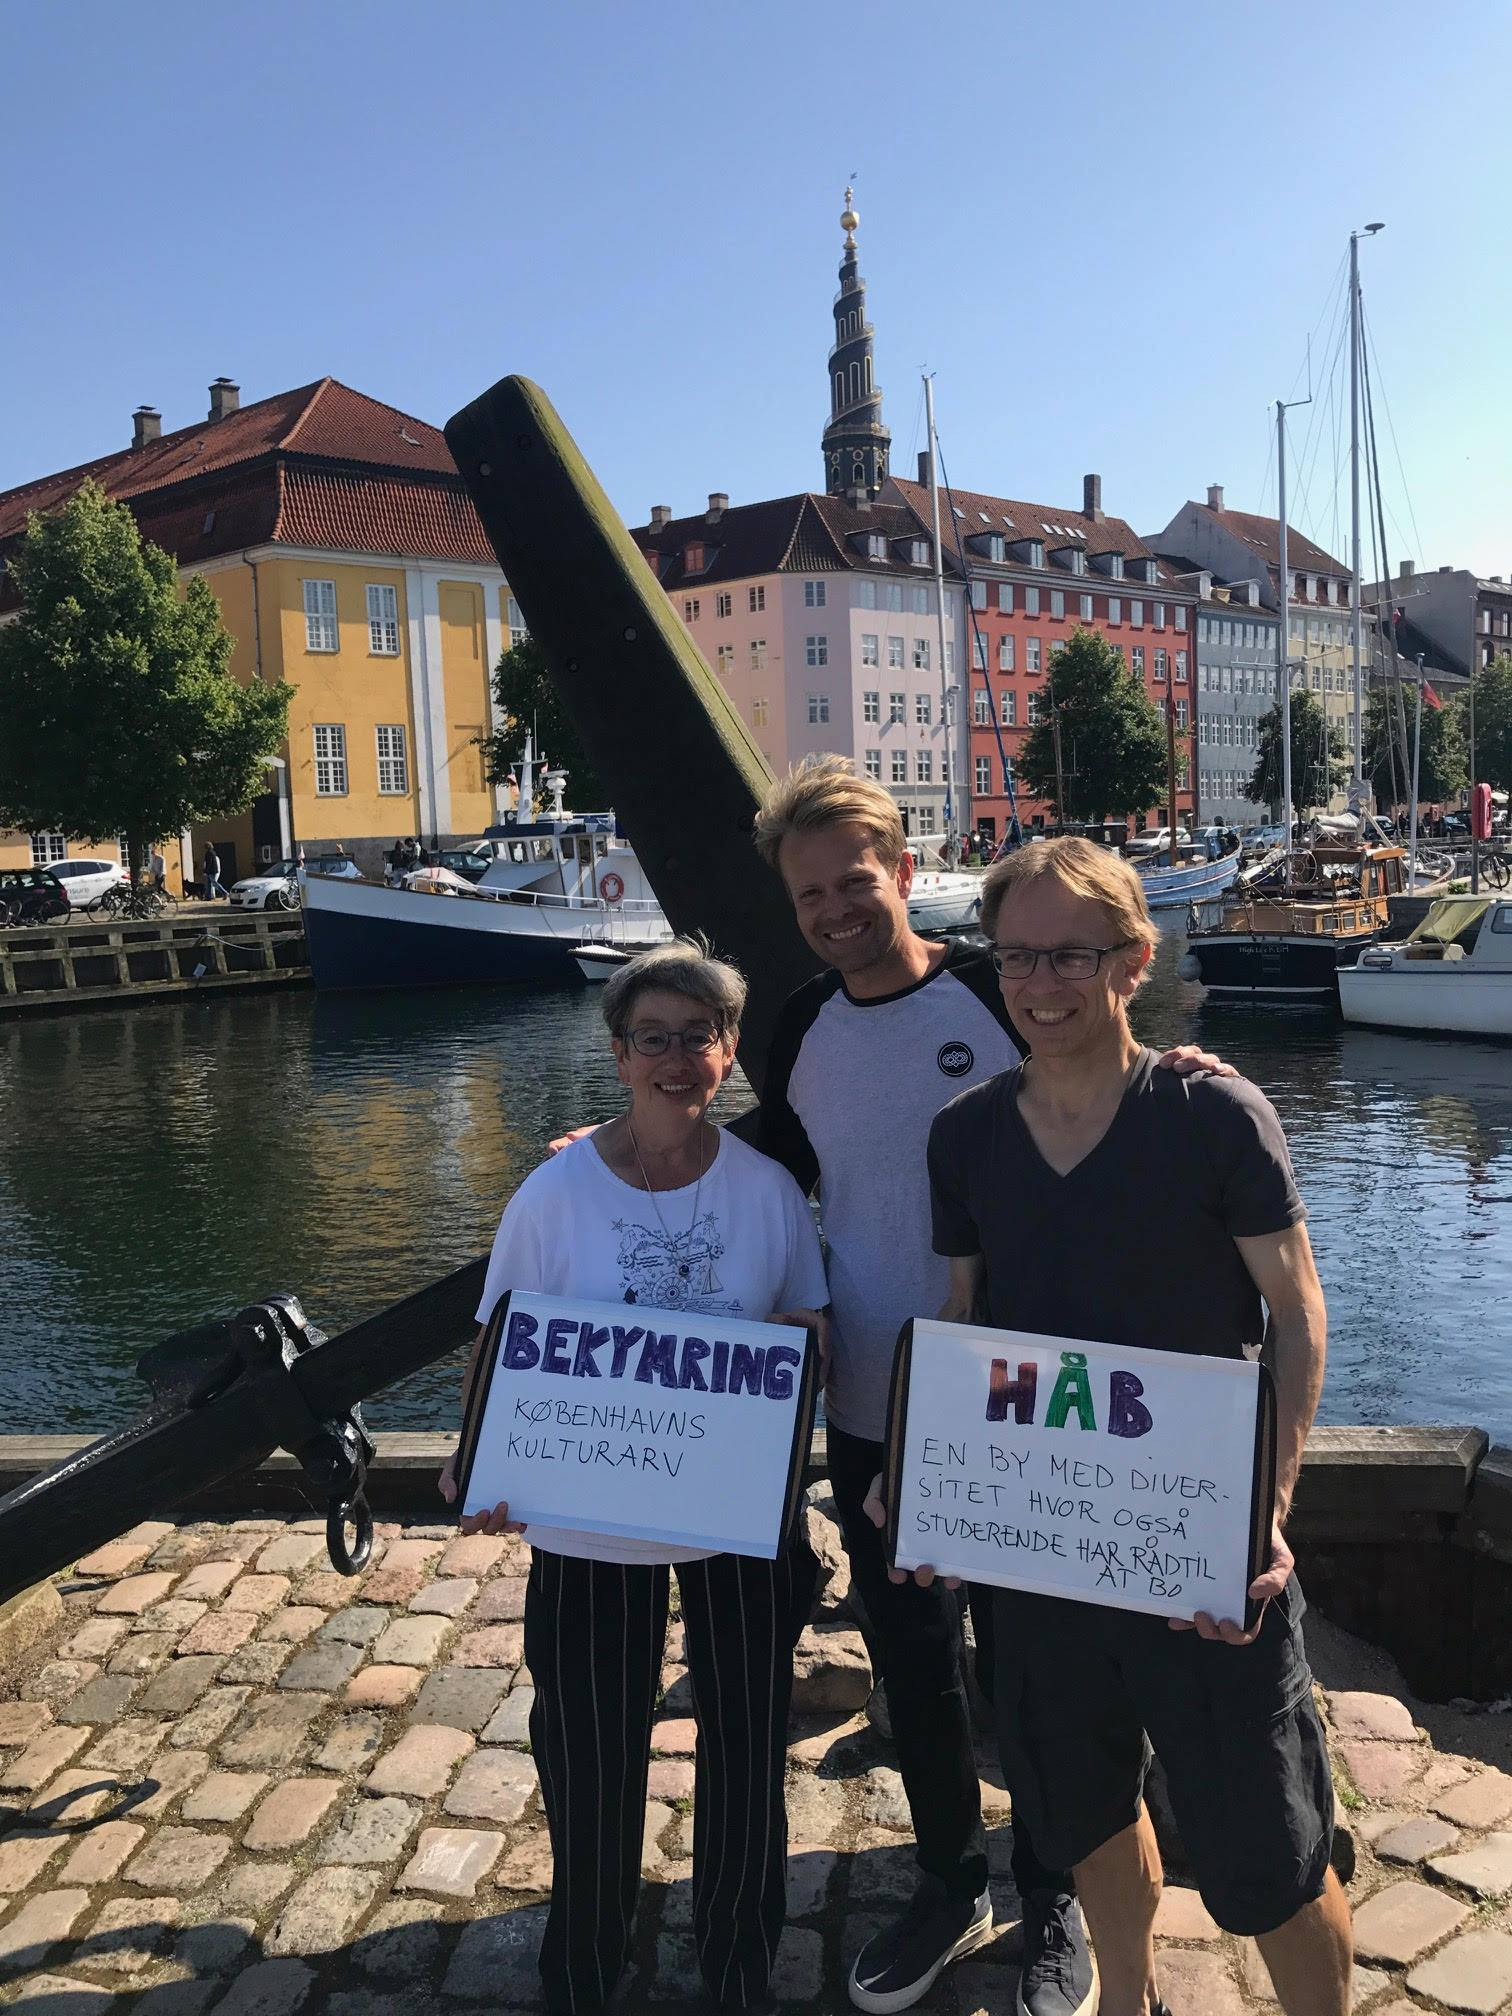 Worry: Protecting Copenhagen's cultural heritage  Hope: A city with diversity where student also can afford to live